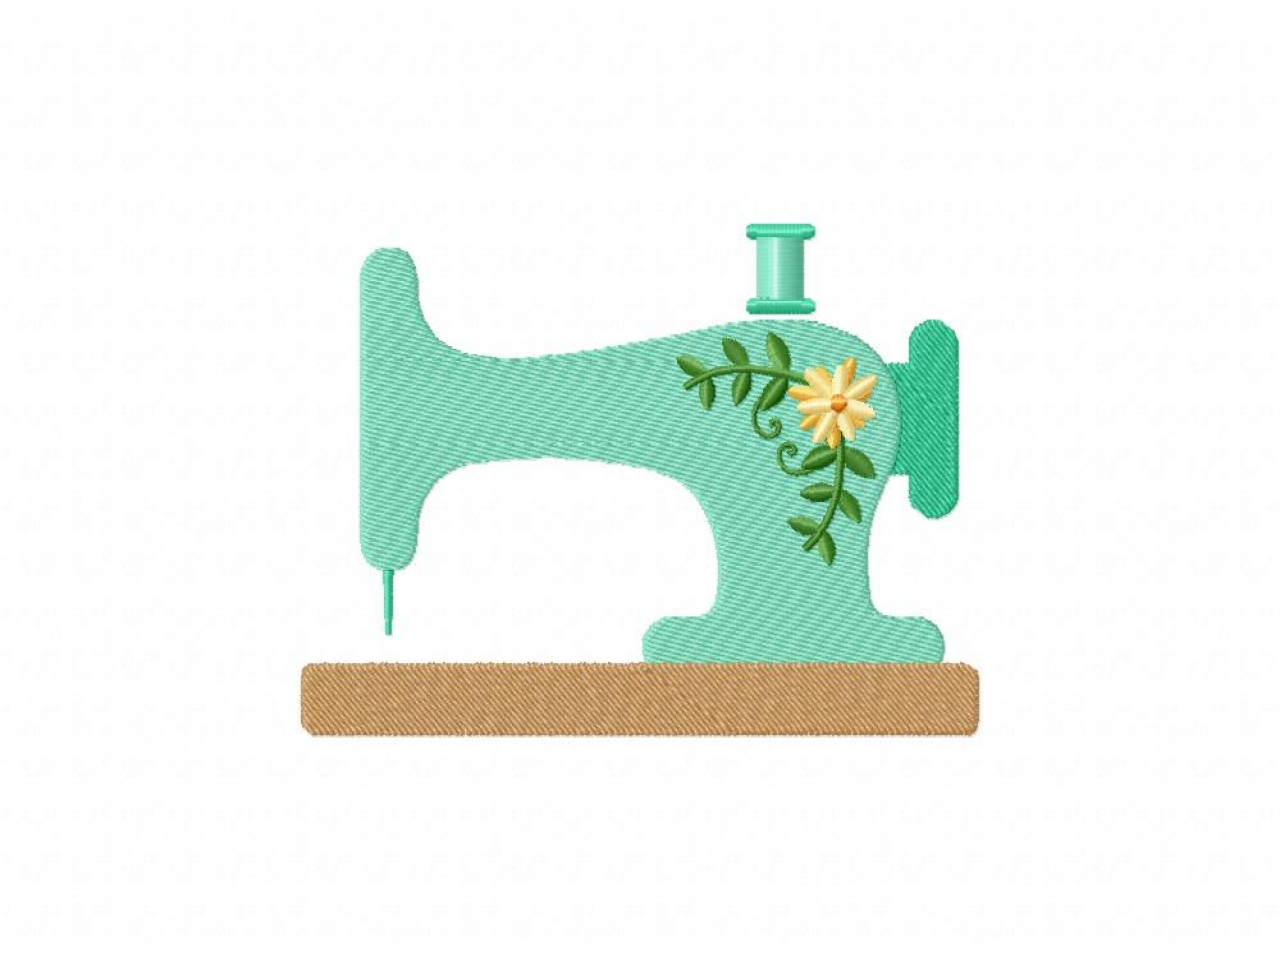 Free Embroidery Machine Cliparts, Download Free Clip Art, Free Clip.